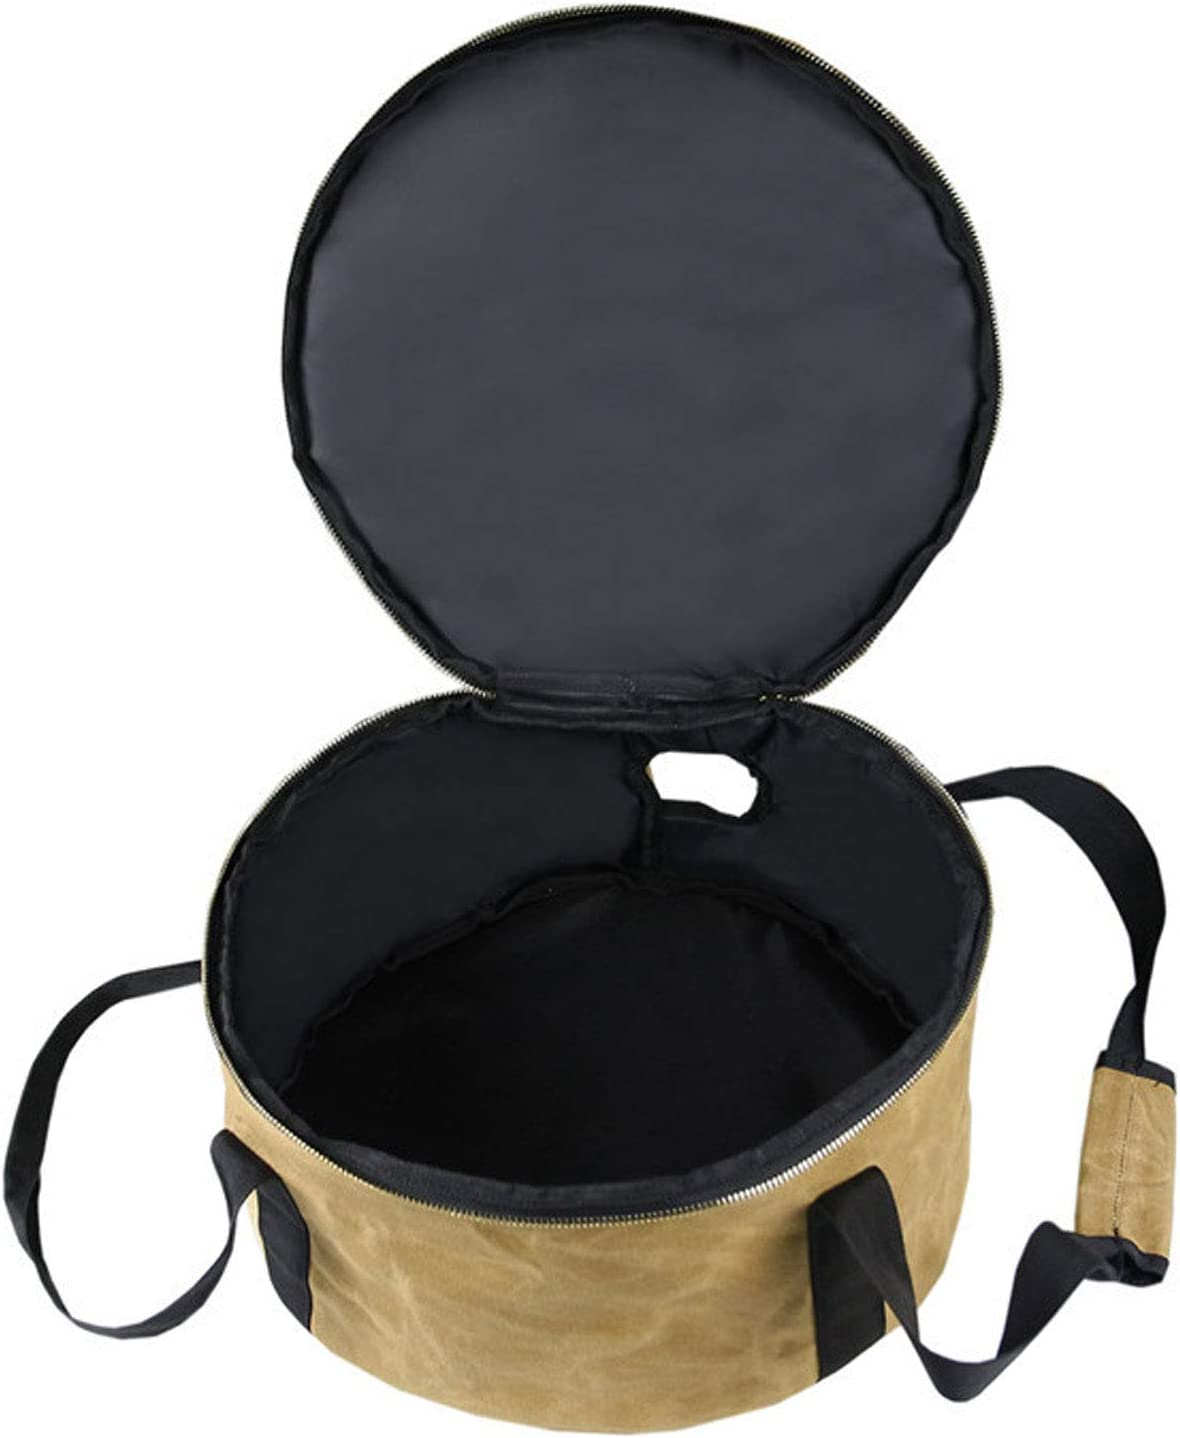 Camping Pot Storage Bag, Camping Cookware with Pot Handle Hole, Dutch Pot Storage Bag, for Outdoor Camping Picnic Carry Bag, Pressure Cooker Travel Tote Bag,1